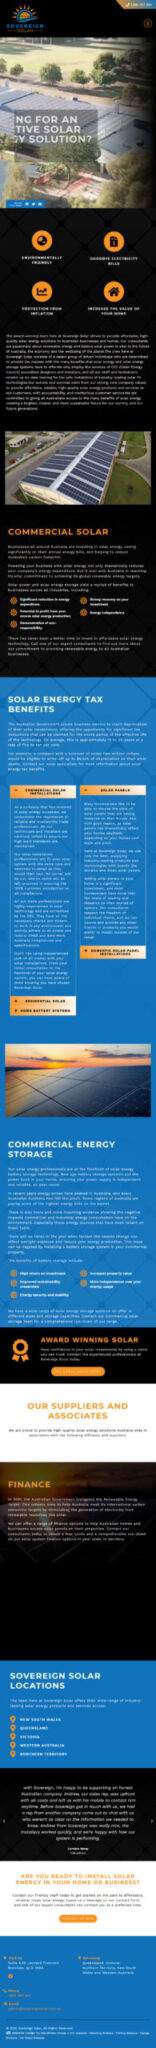 Sovereign Solar: Tablet View